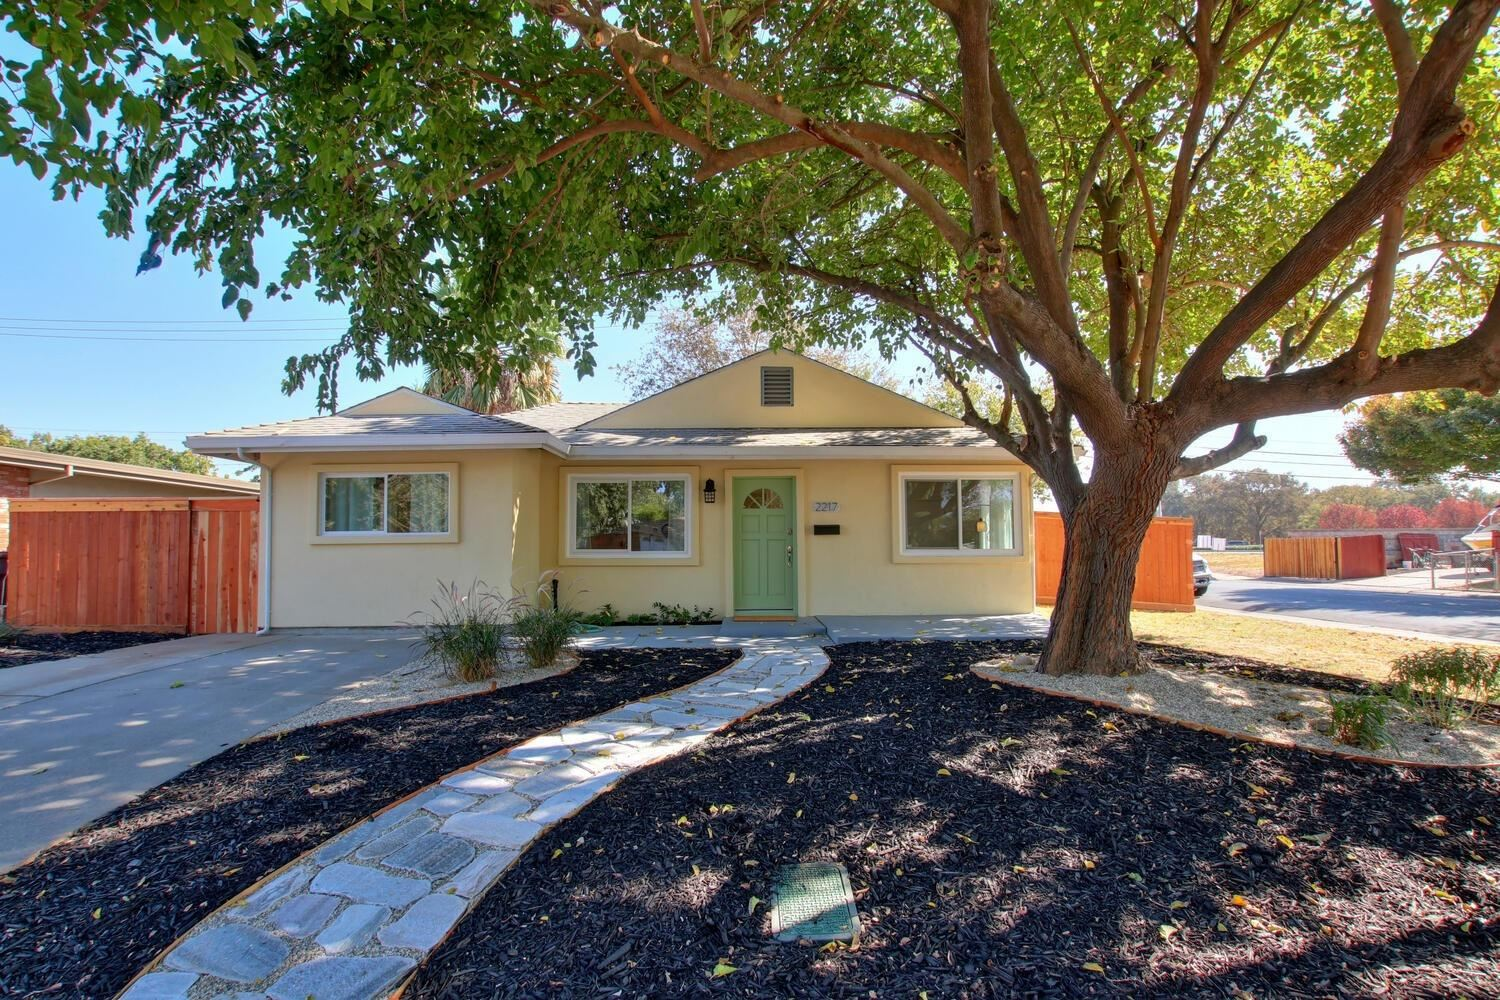 Photo of 2217 Kinsington Street, West Sacramento, CA 95691 (MLS # 20056339)